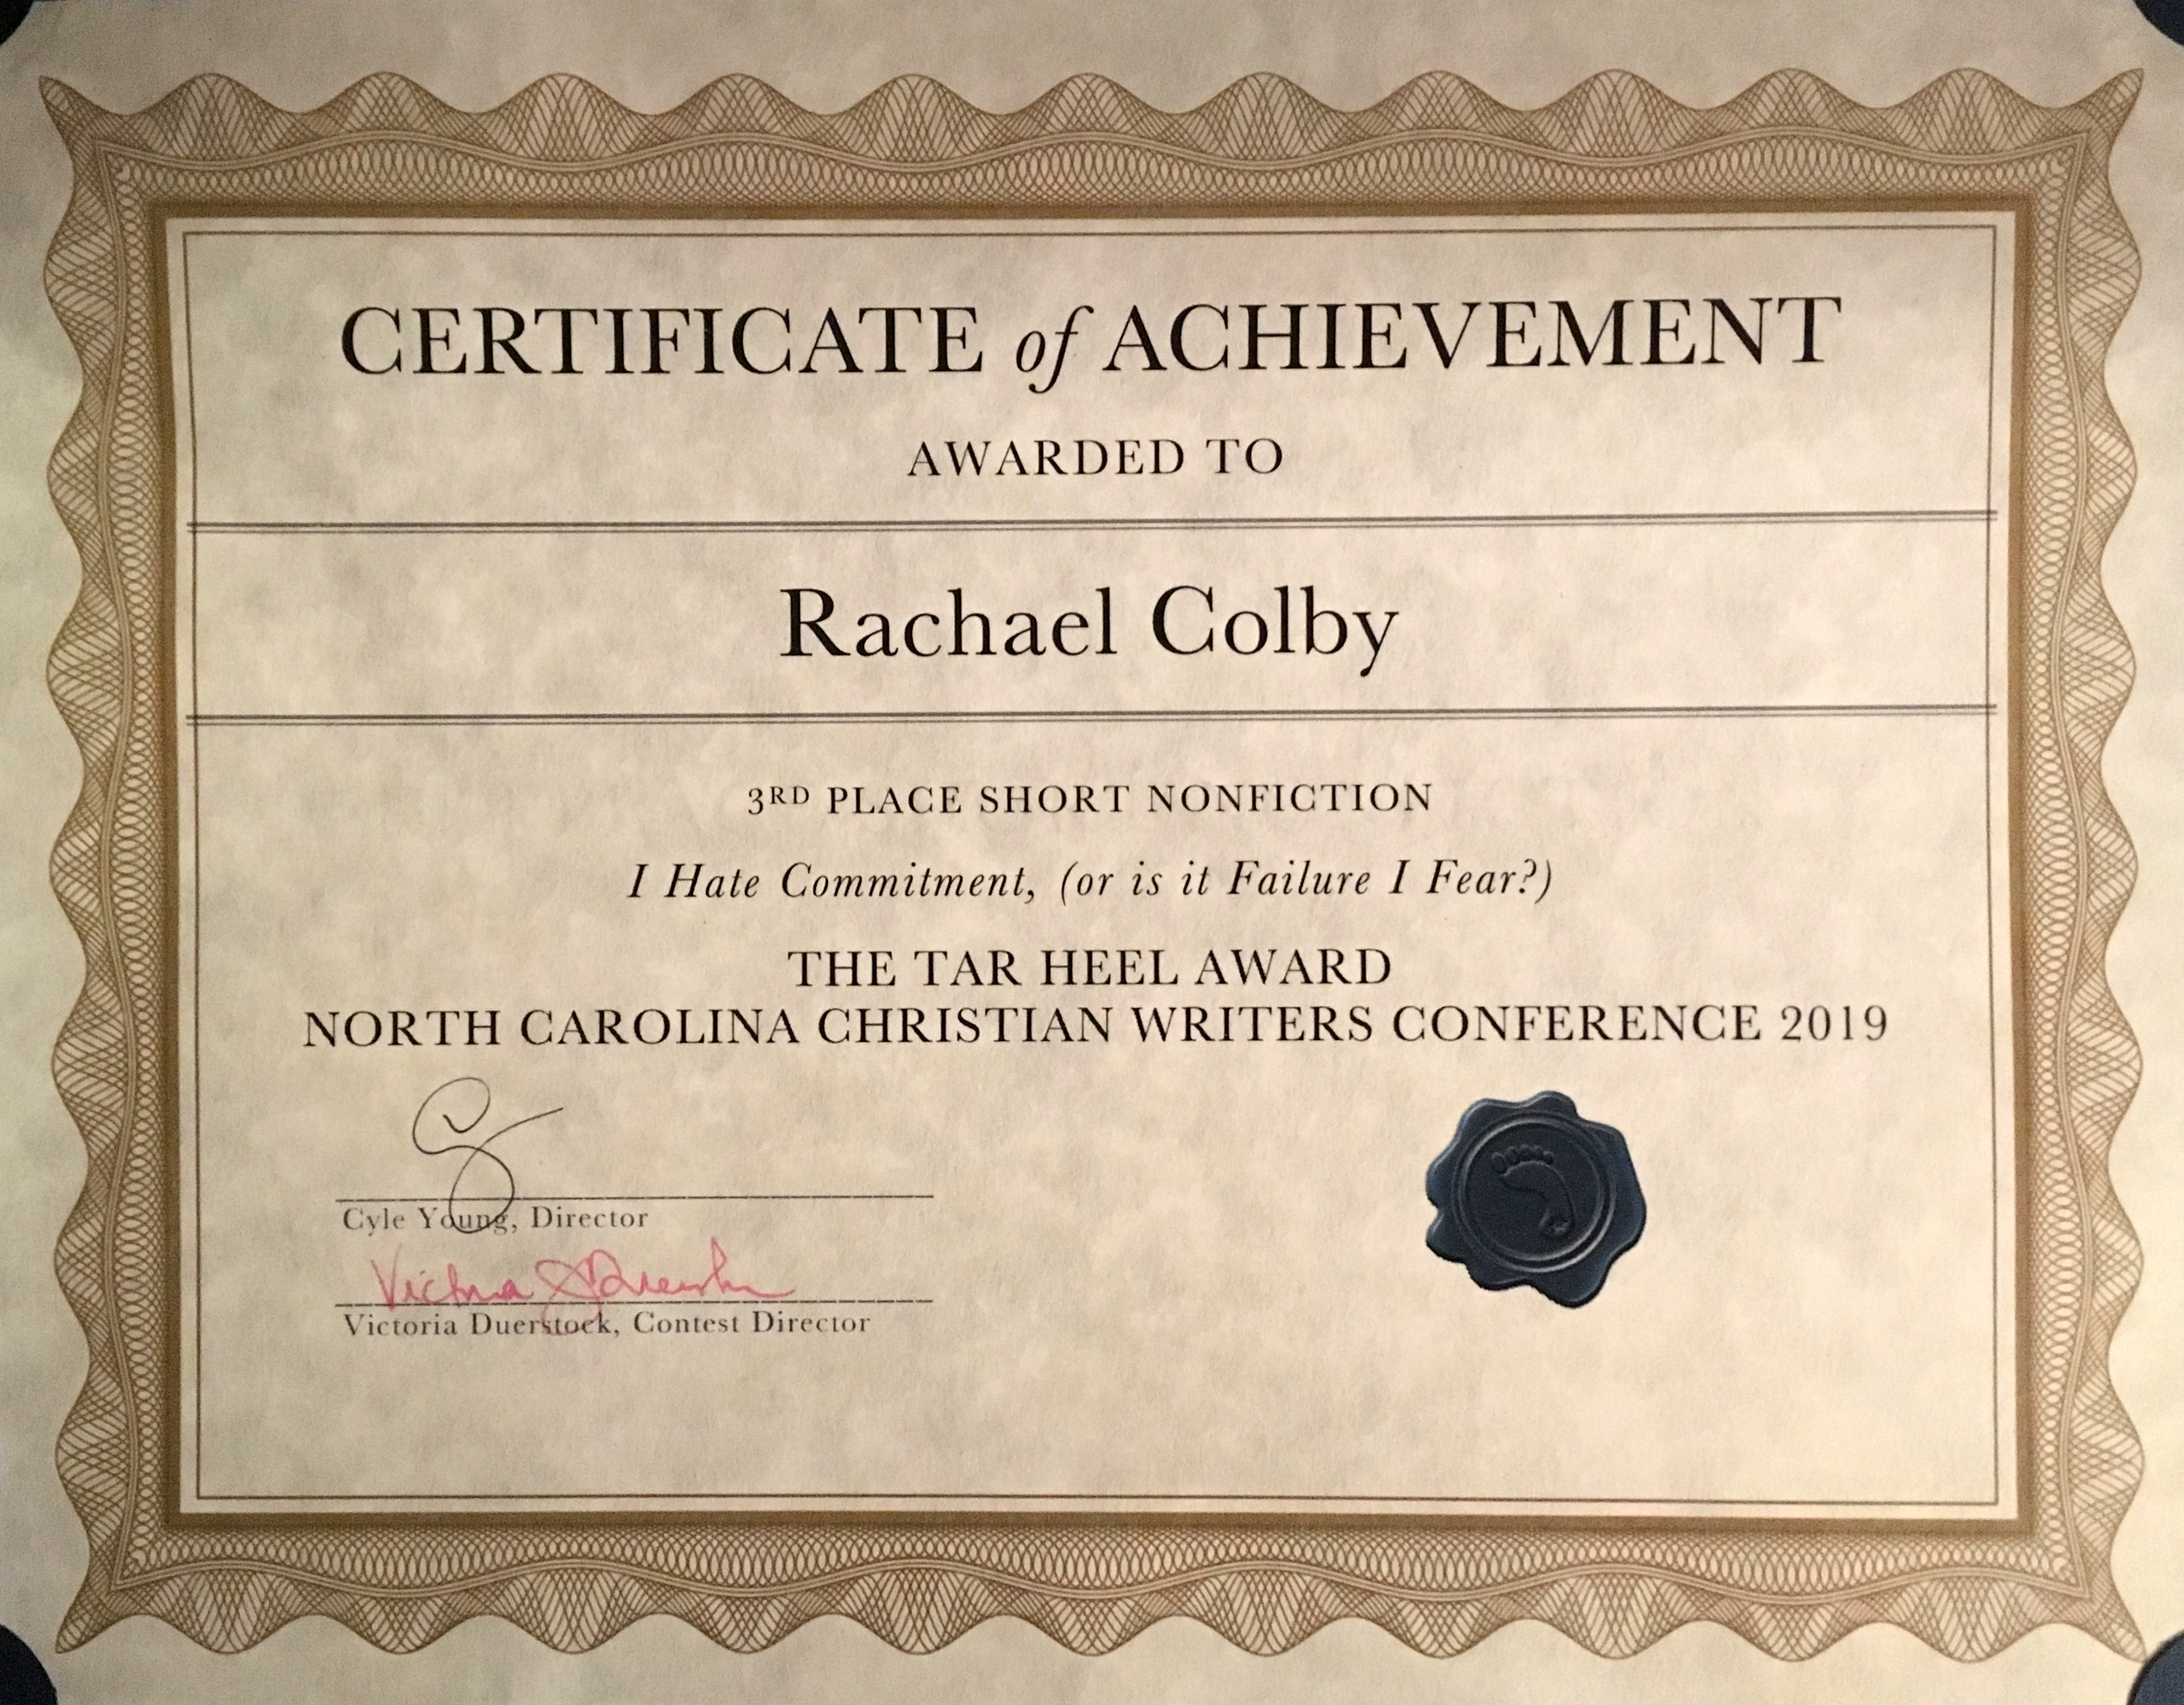 Rachael-M-Colby-North-Carolina-Christian-Writers-Conference-3rd-Place-Tar-Heel-Award